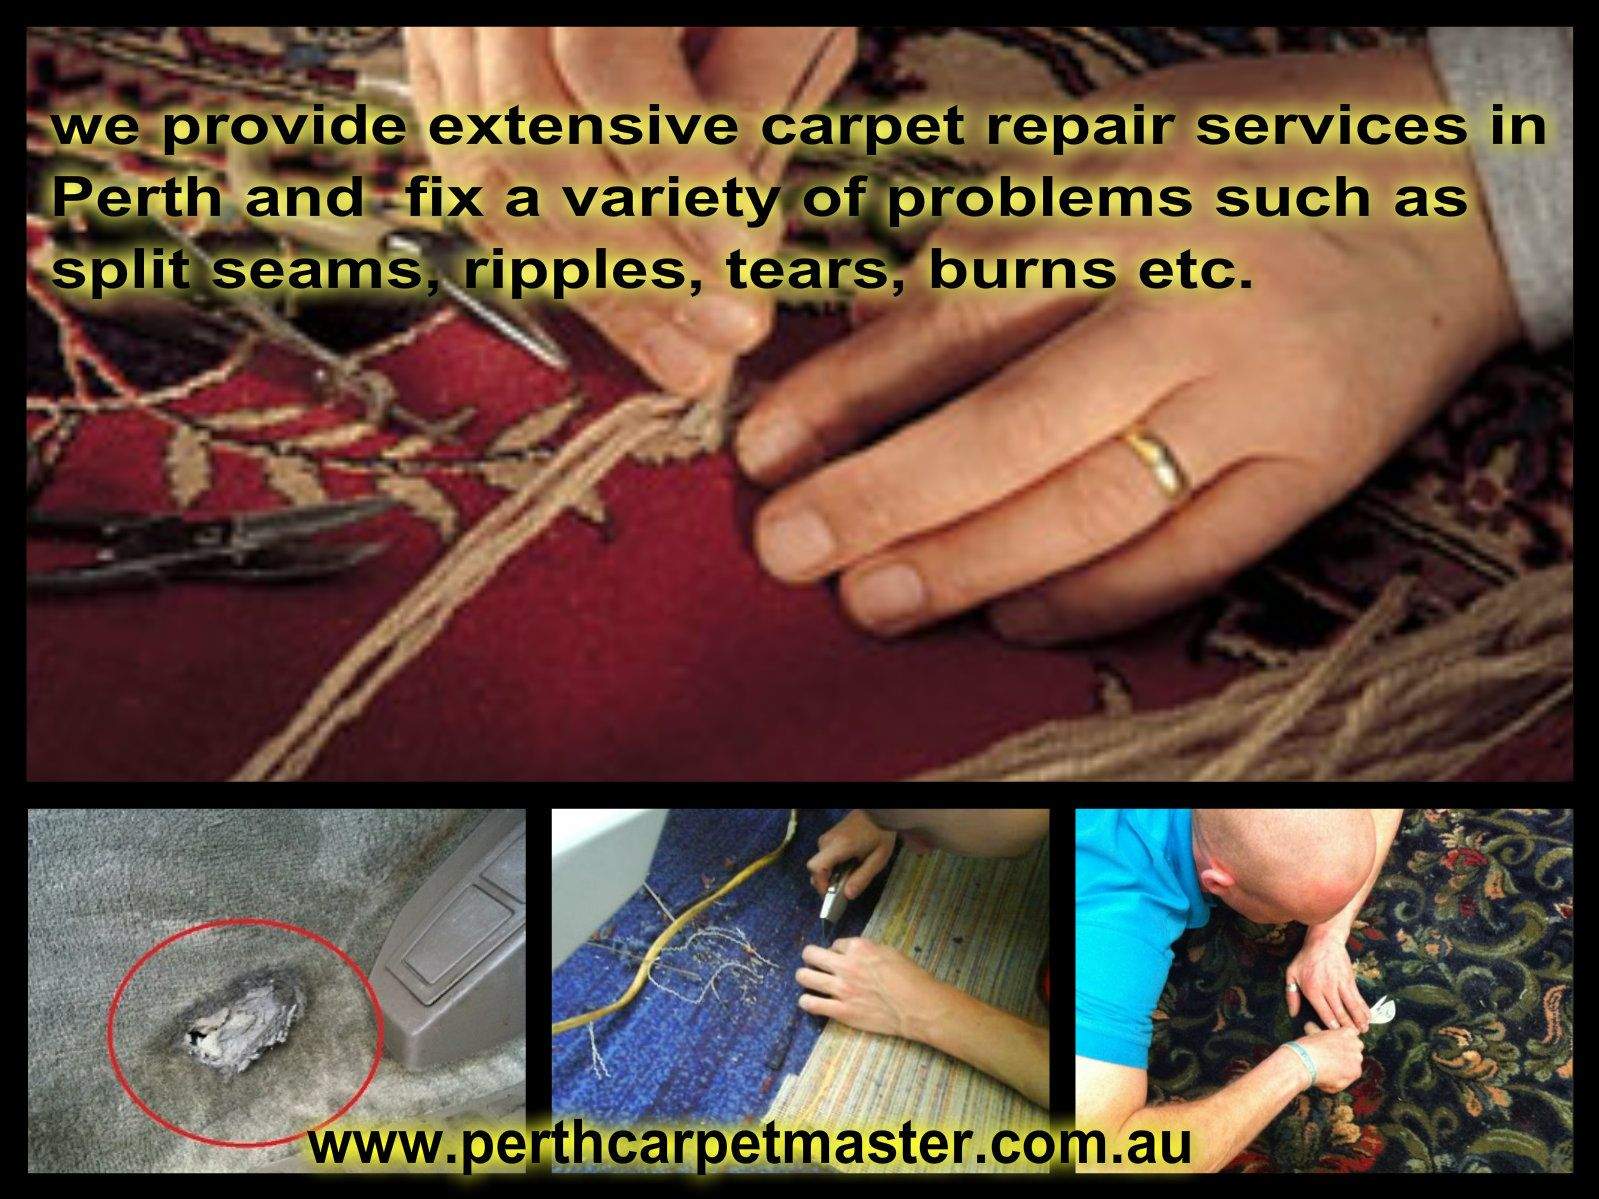 Perth Carpet Master Specialized In Both Residential And Commercial Carpet Repair Work They Can Repair Any Type Of Carpet Carpet Repair Types Of Carpet Repair